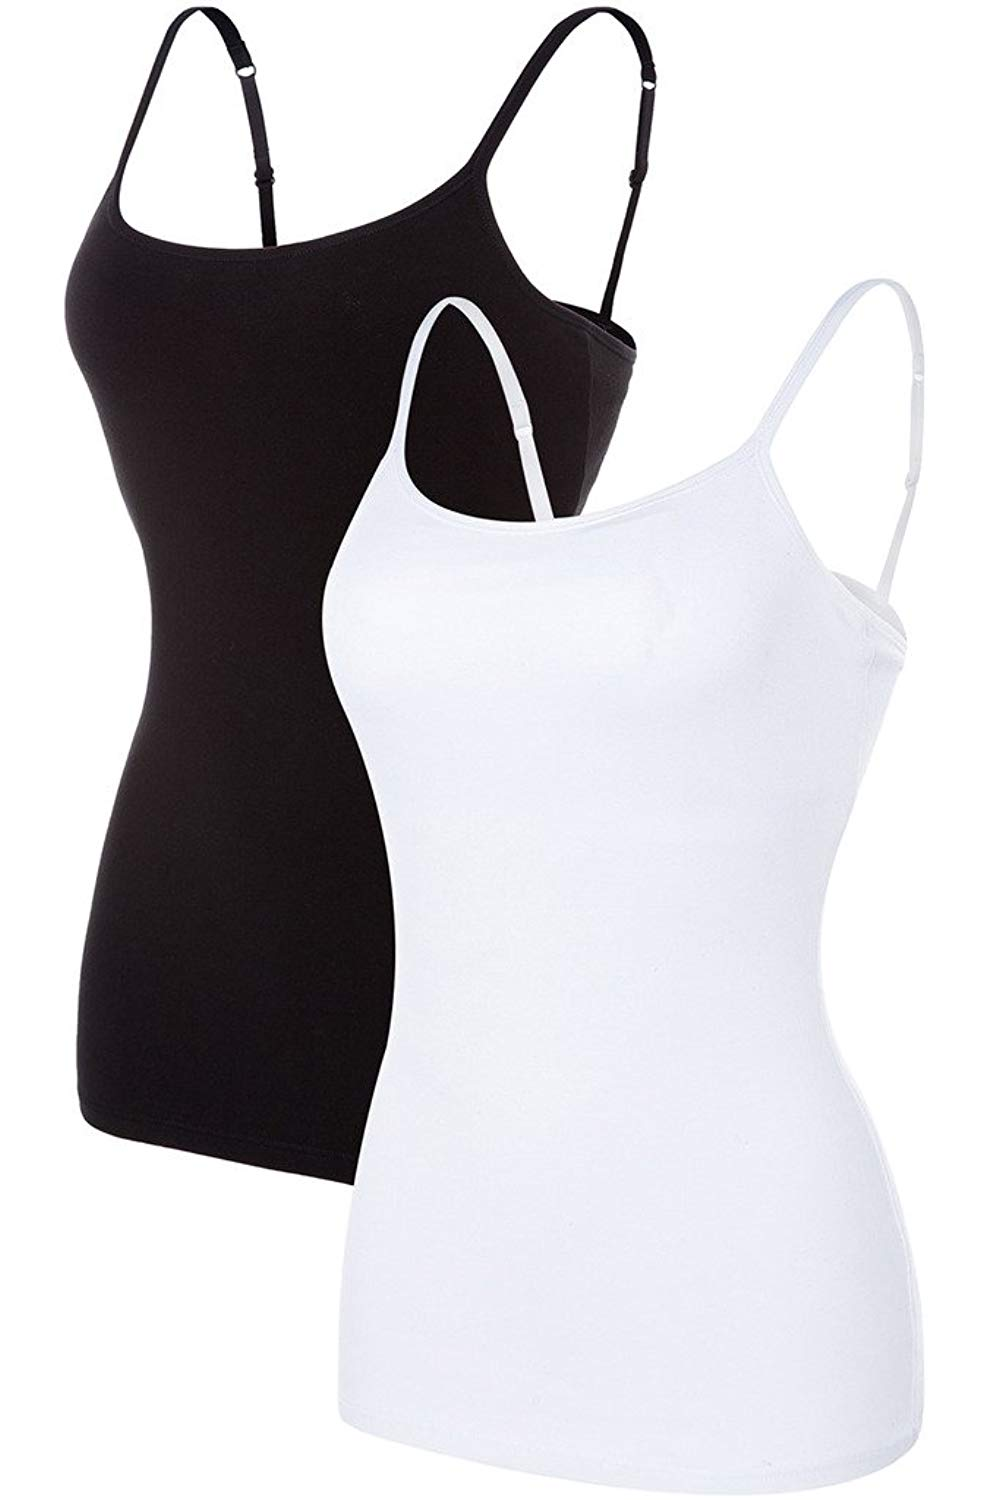 Sociala Women's Shelf Bra Camisole Active Basic Cami Cotton Tanks Top Pack of 2